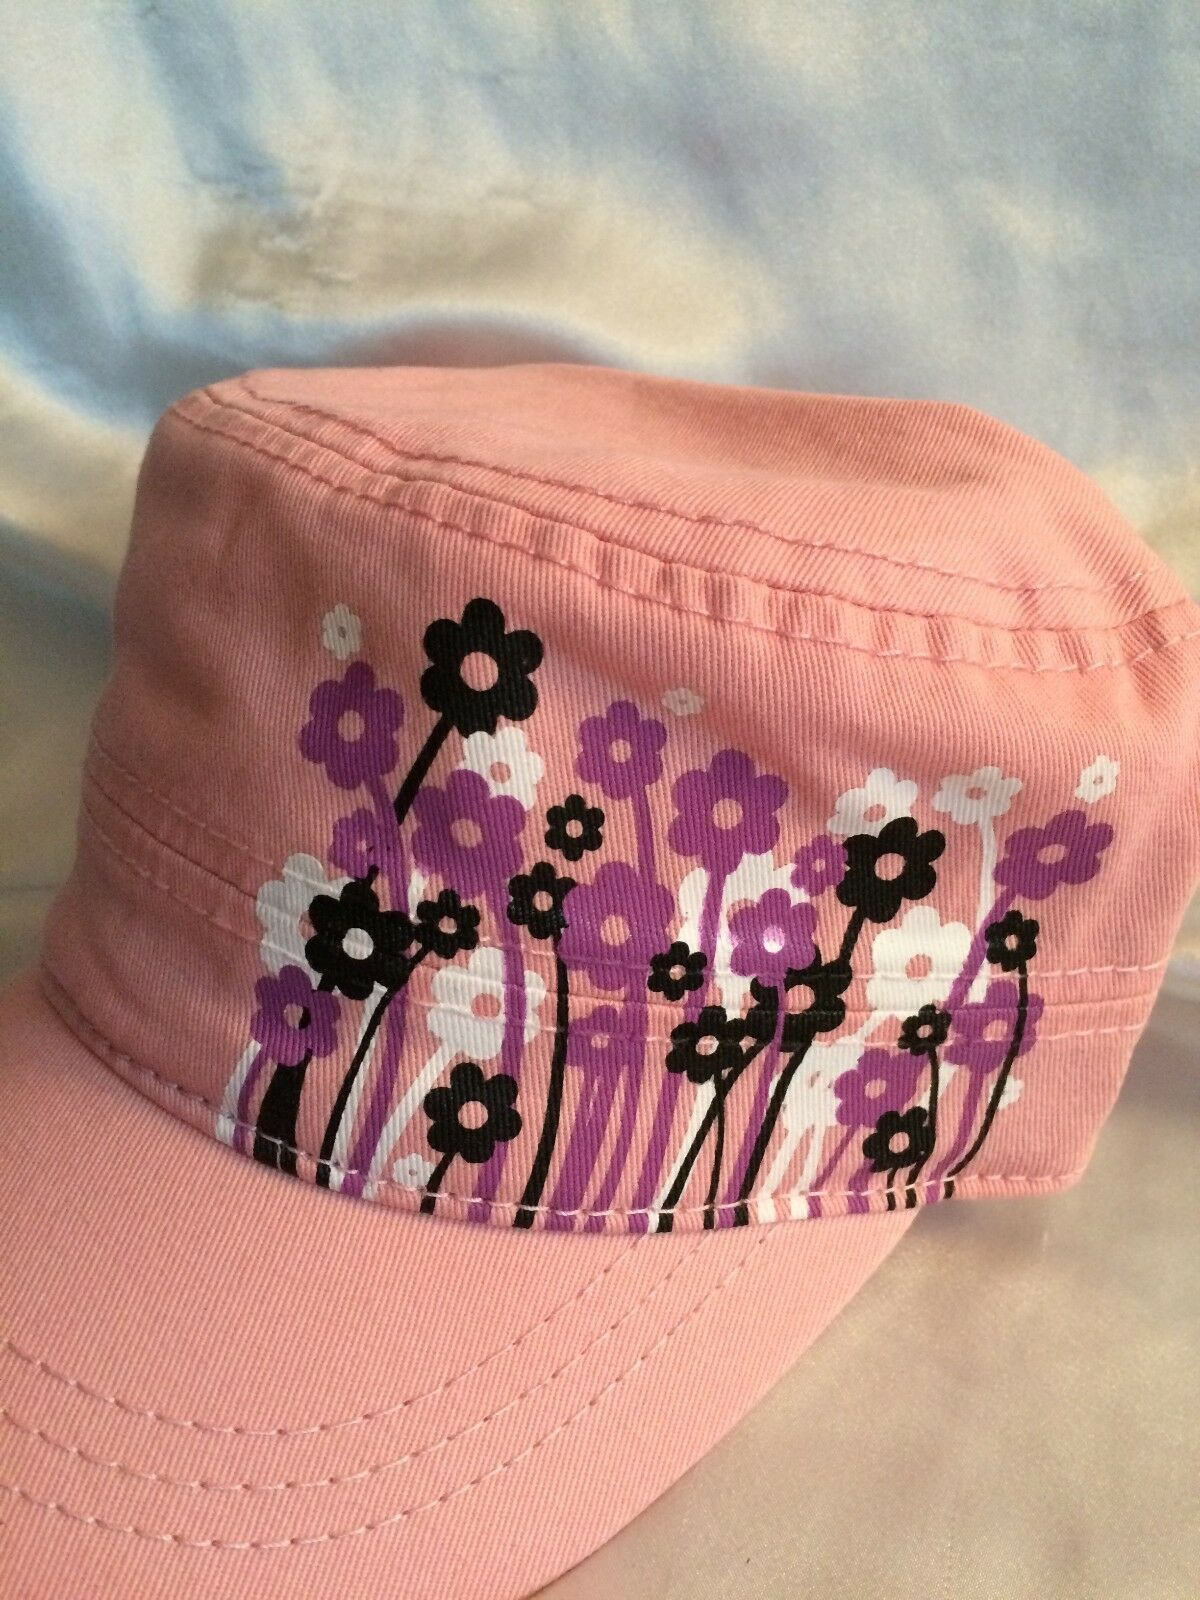 PUGS Gear-The Shelby-Cadet Military Style Cap-Pink Wild Flowers-Women s 1  of 3FREE Shipping PUGS Gear-The ... 82af7e1f7